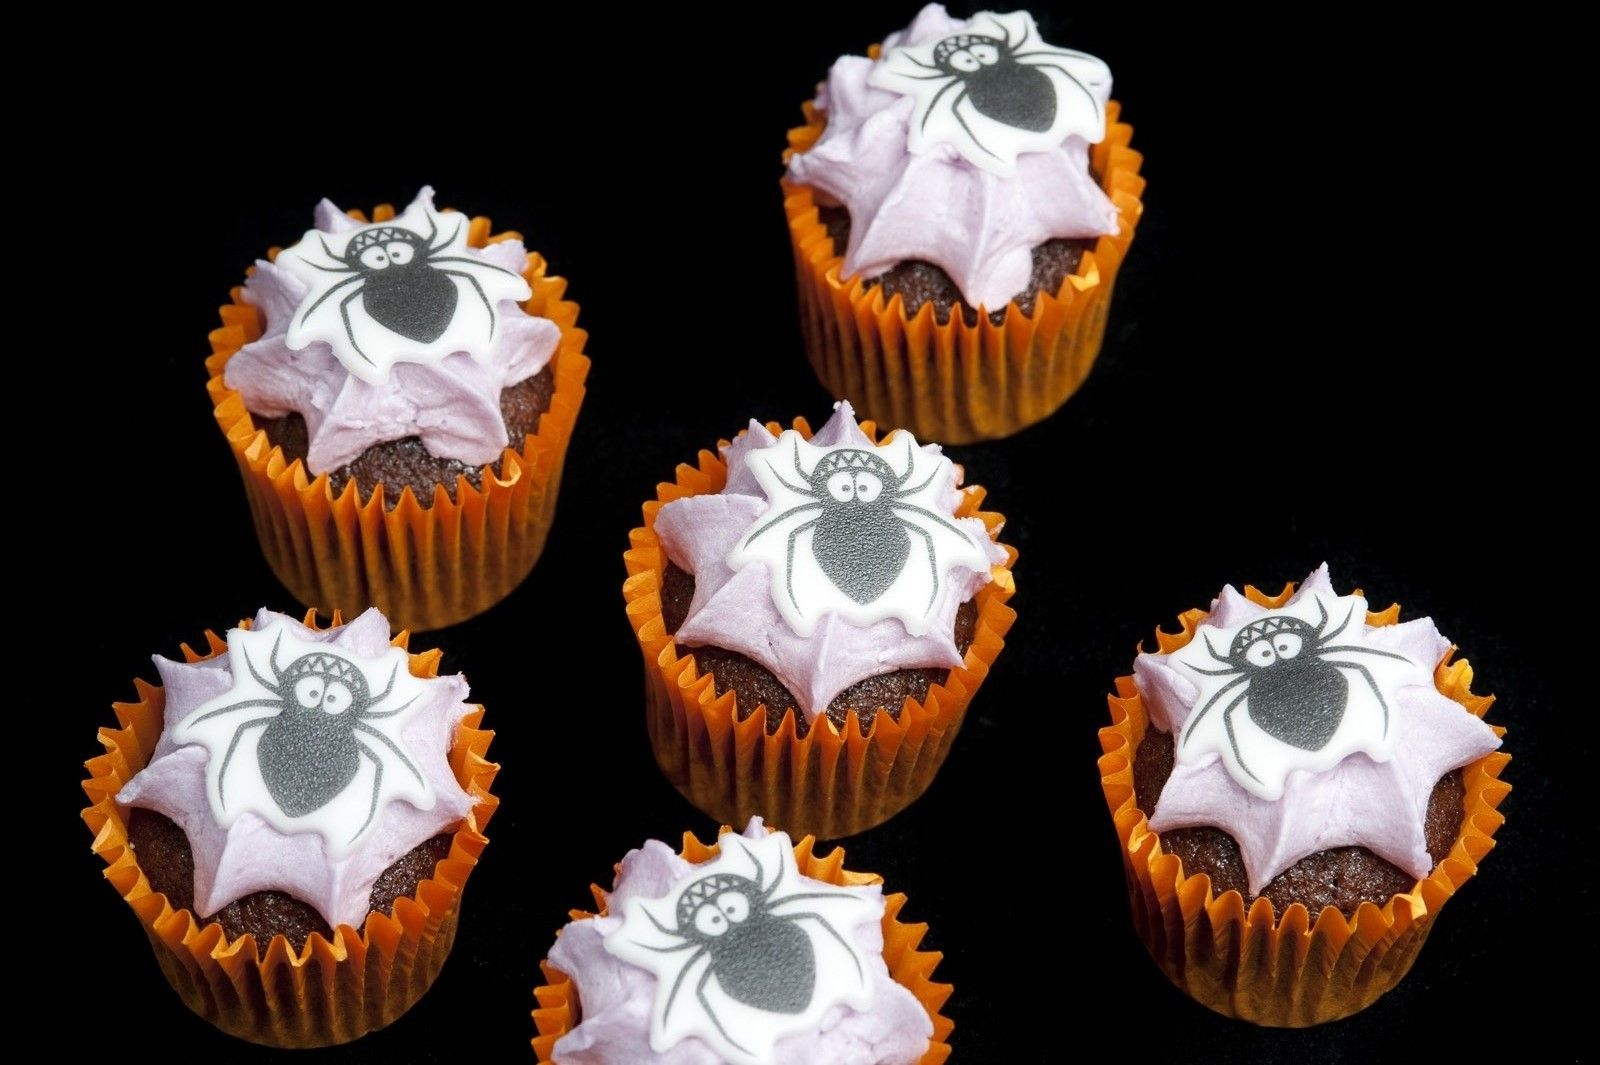 cute halloween decorations  cute halloween mini cakes - Homemade Halloween Decorations Pinterest